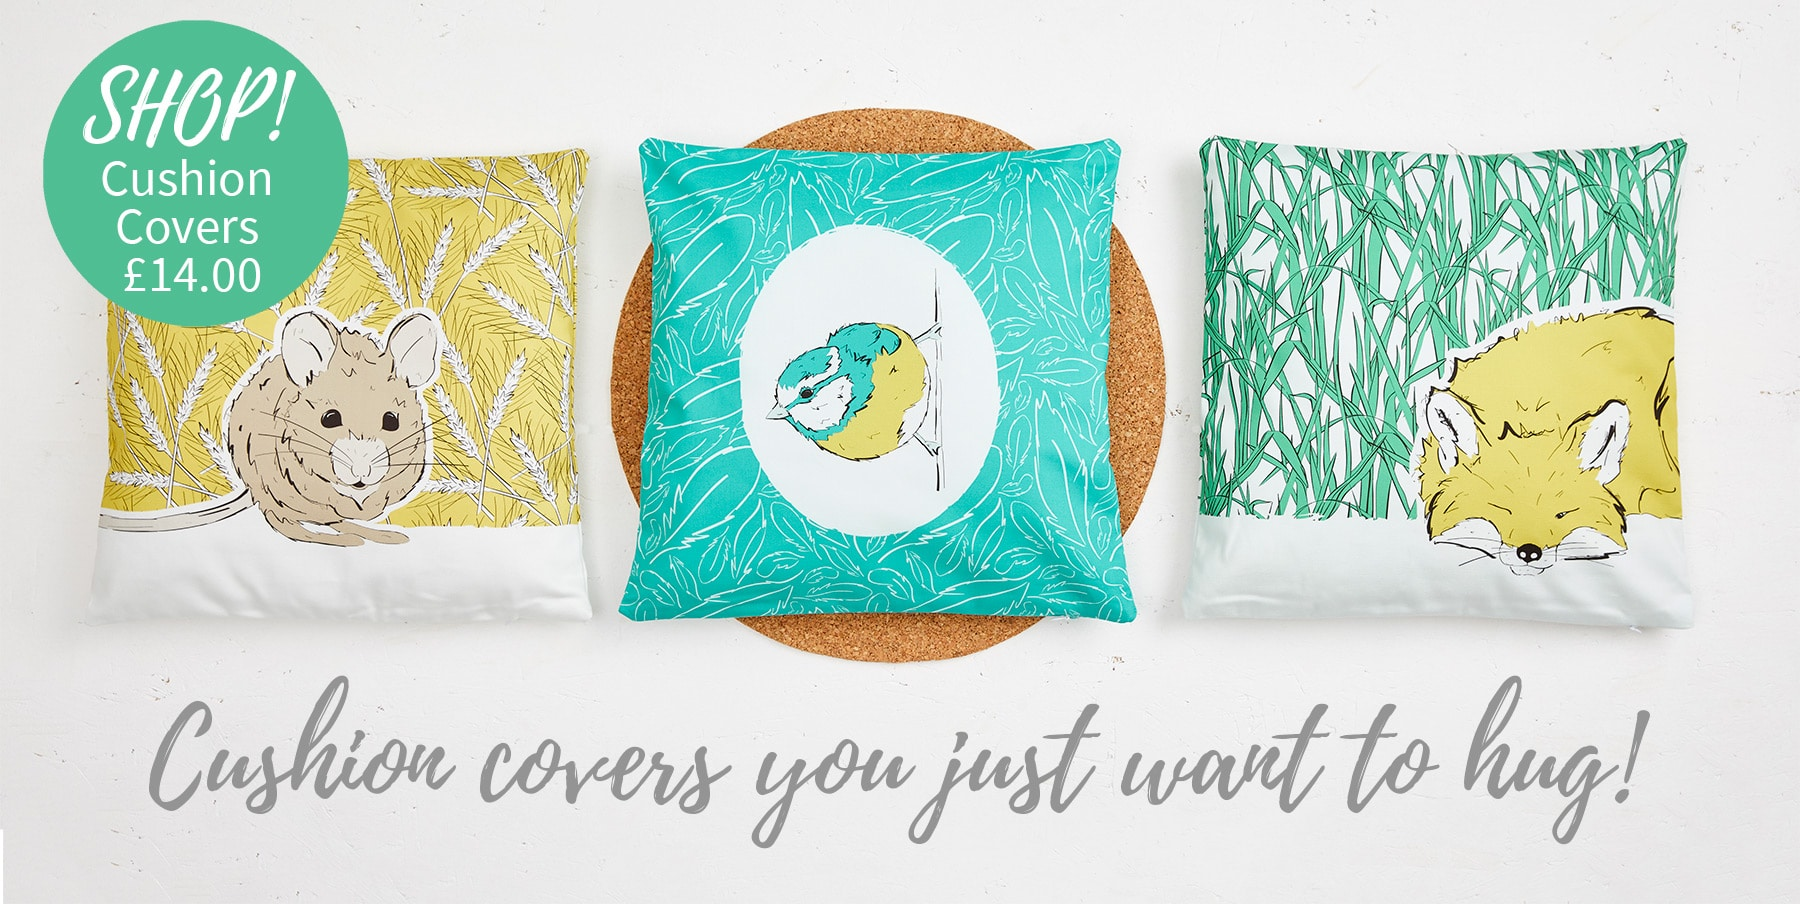 Roo-tid Cushion Covers